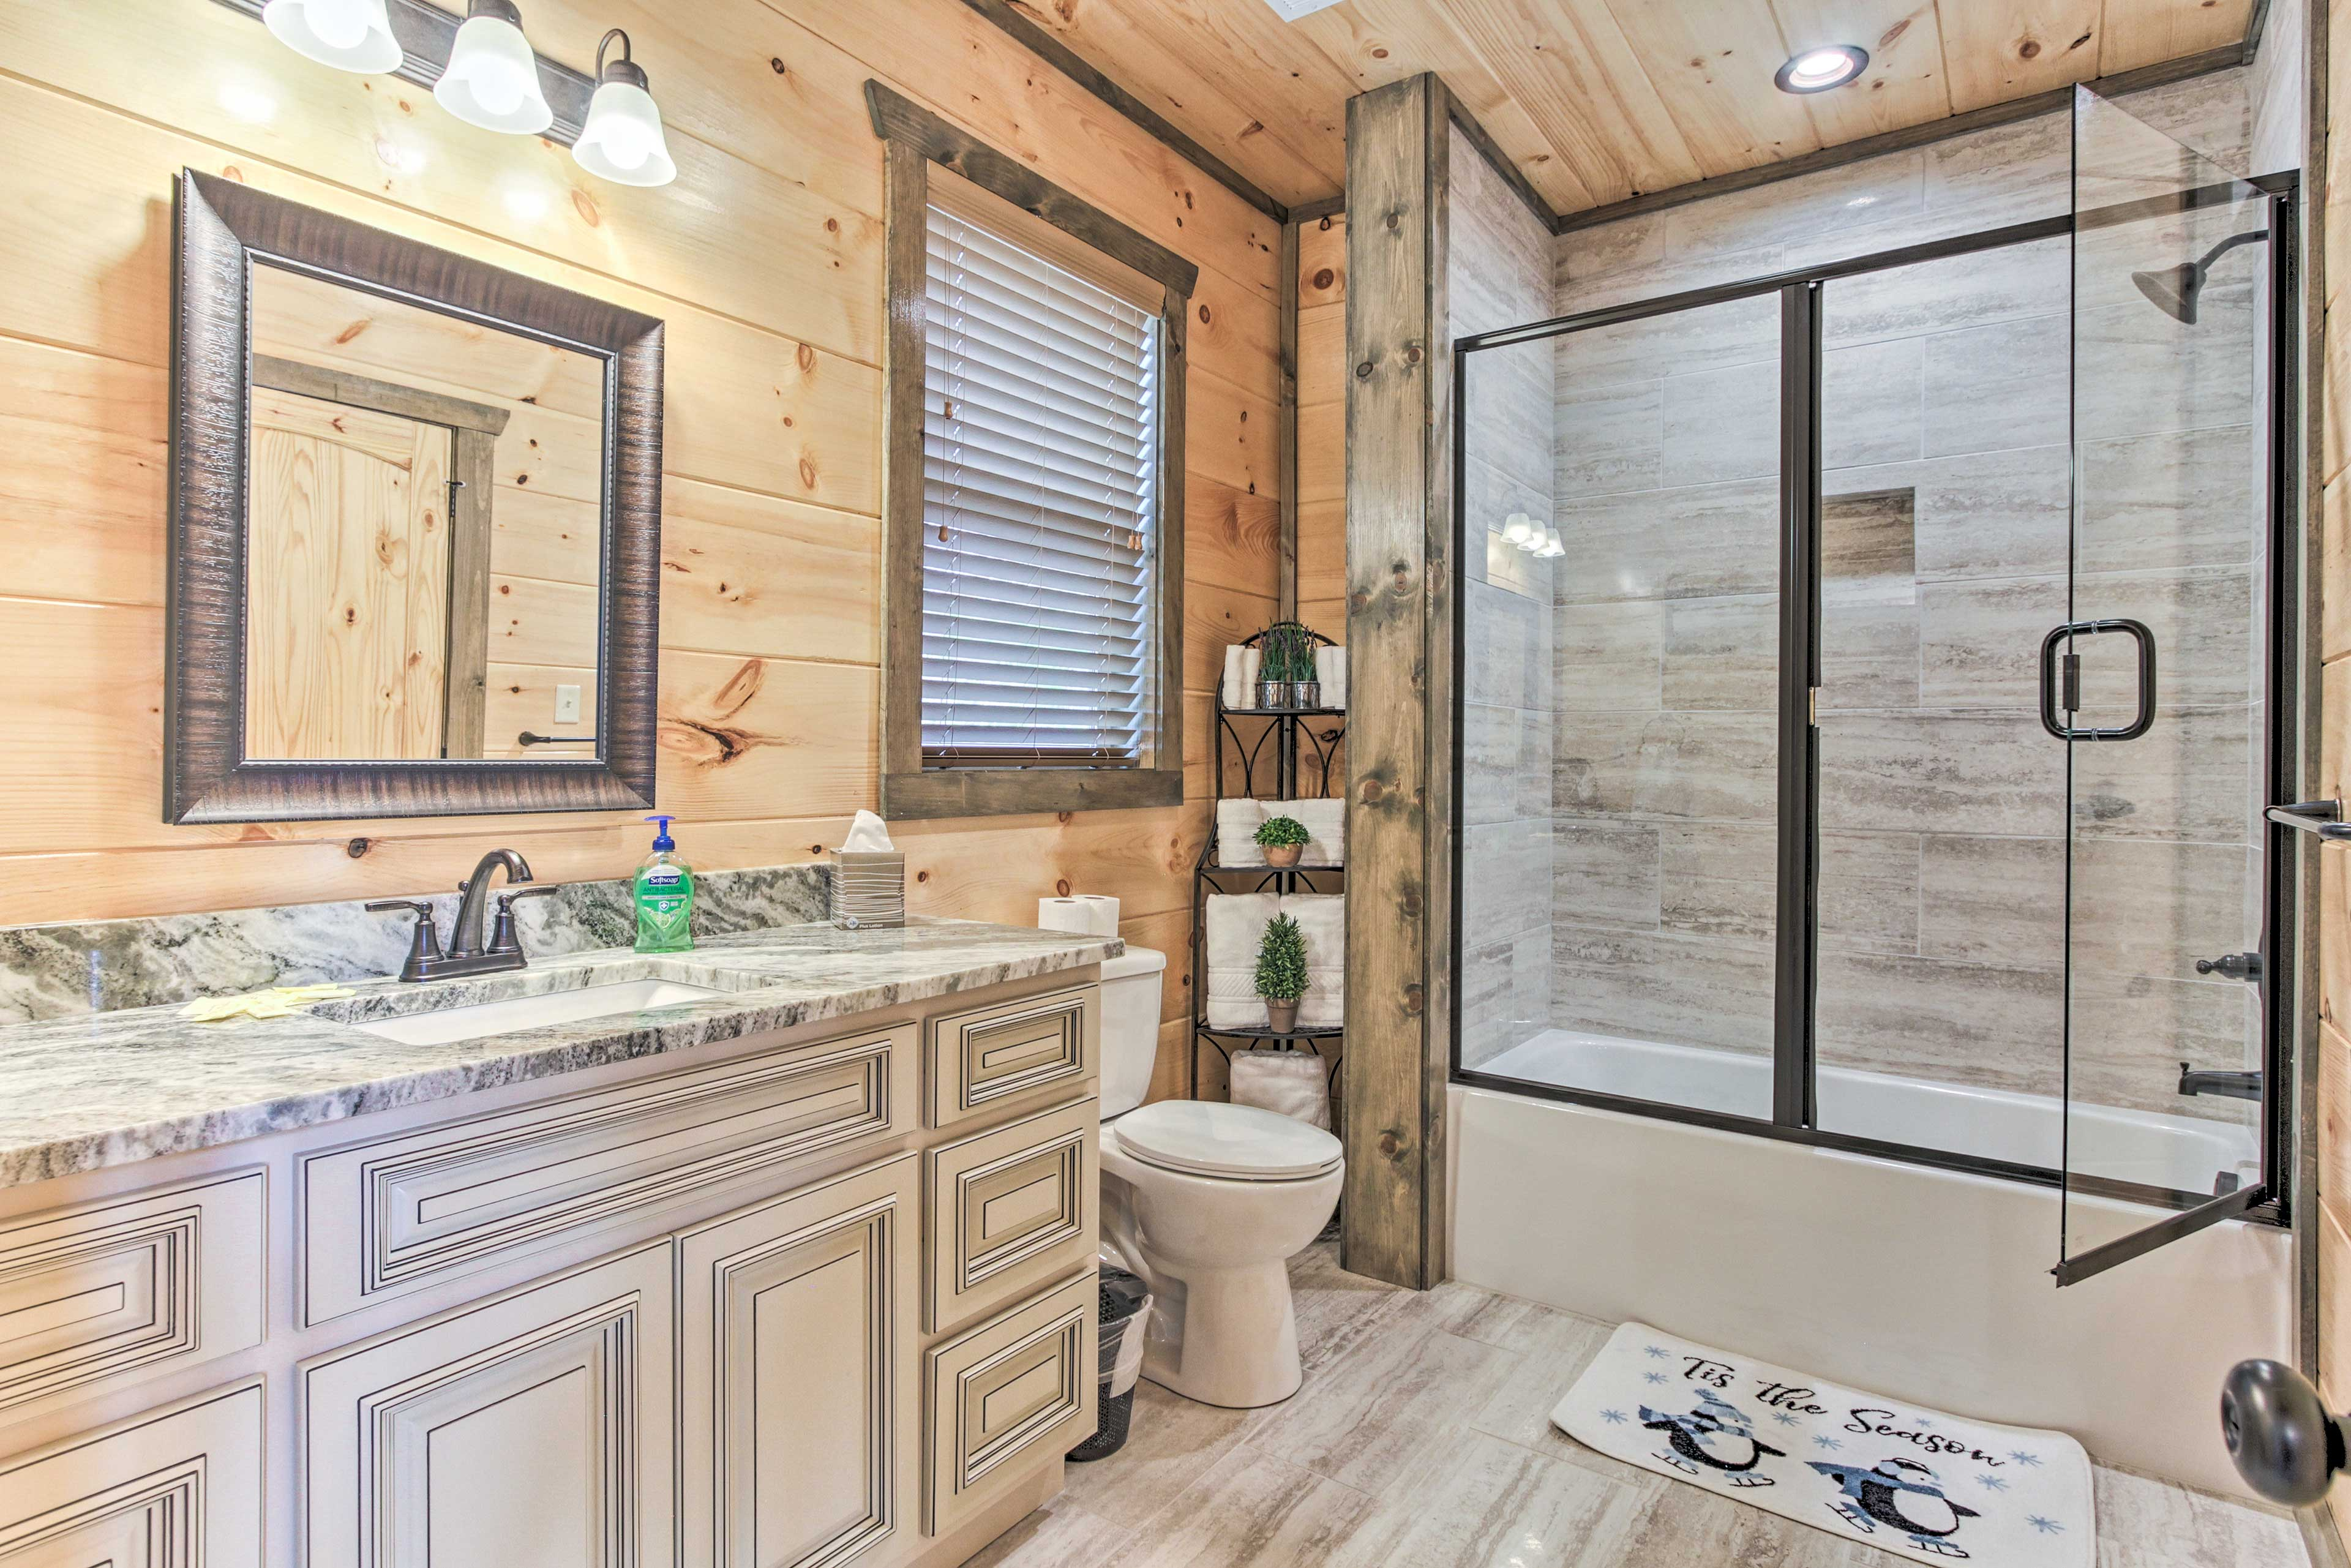 The en-suite bathroom features lots of counter space and a tile-lined shower.